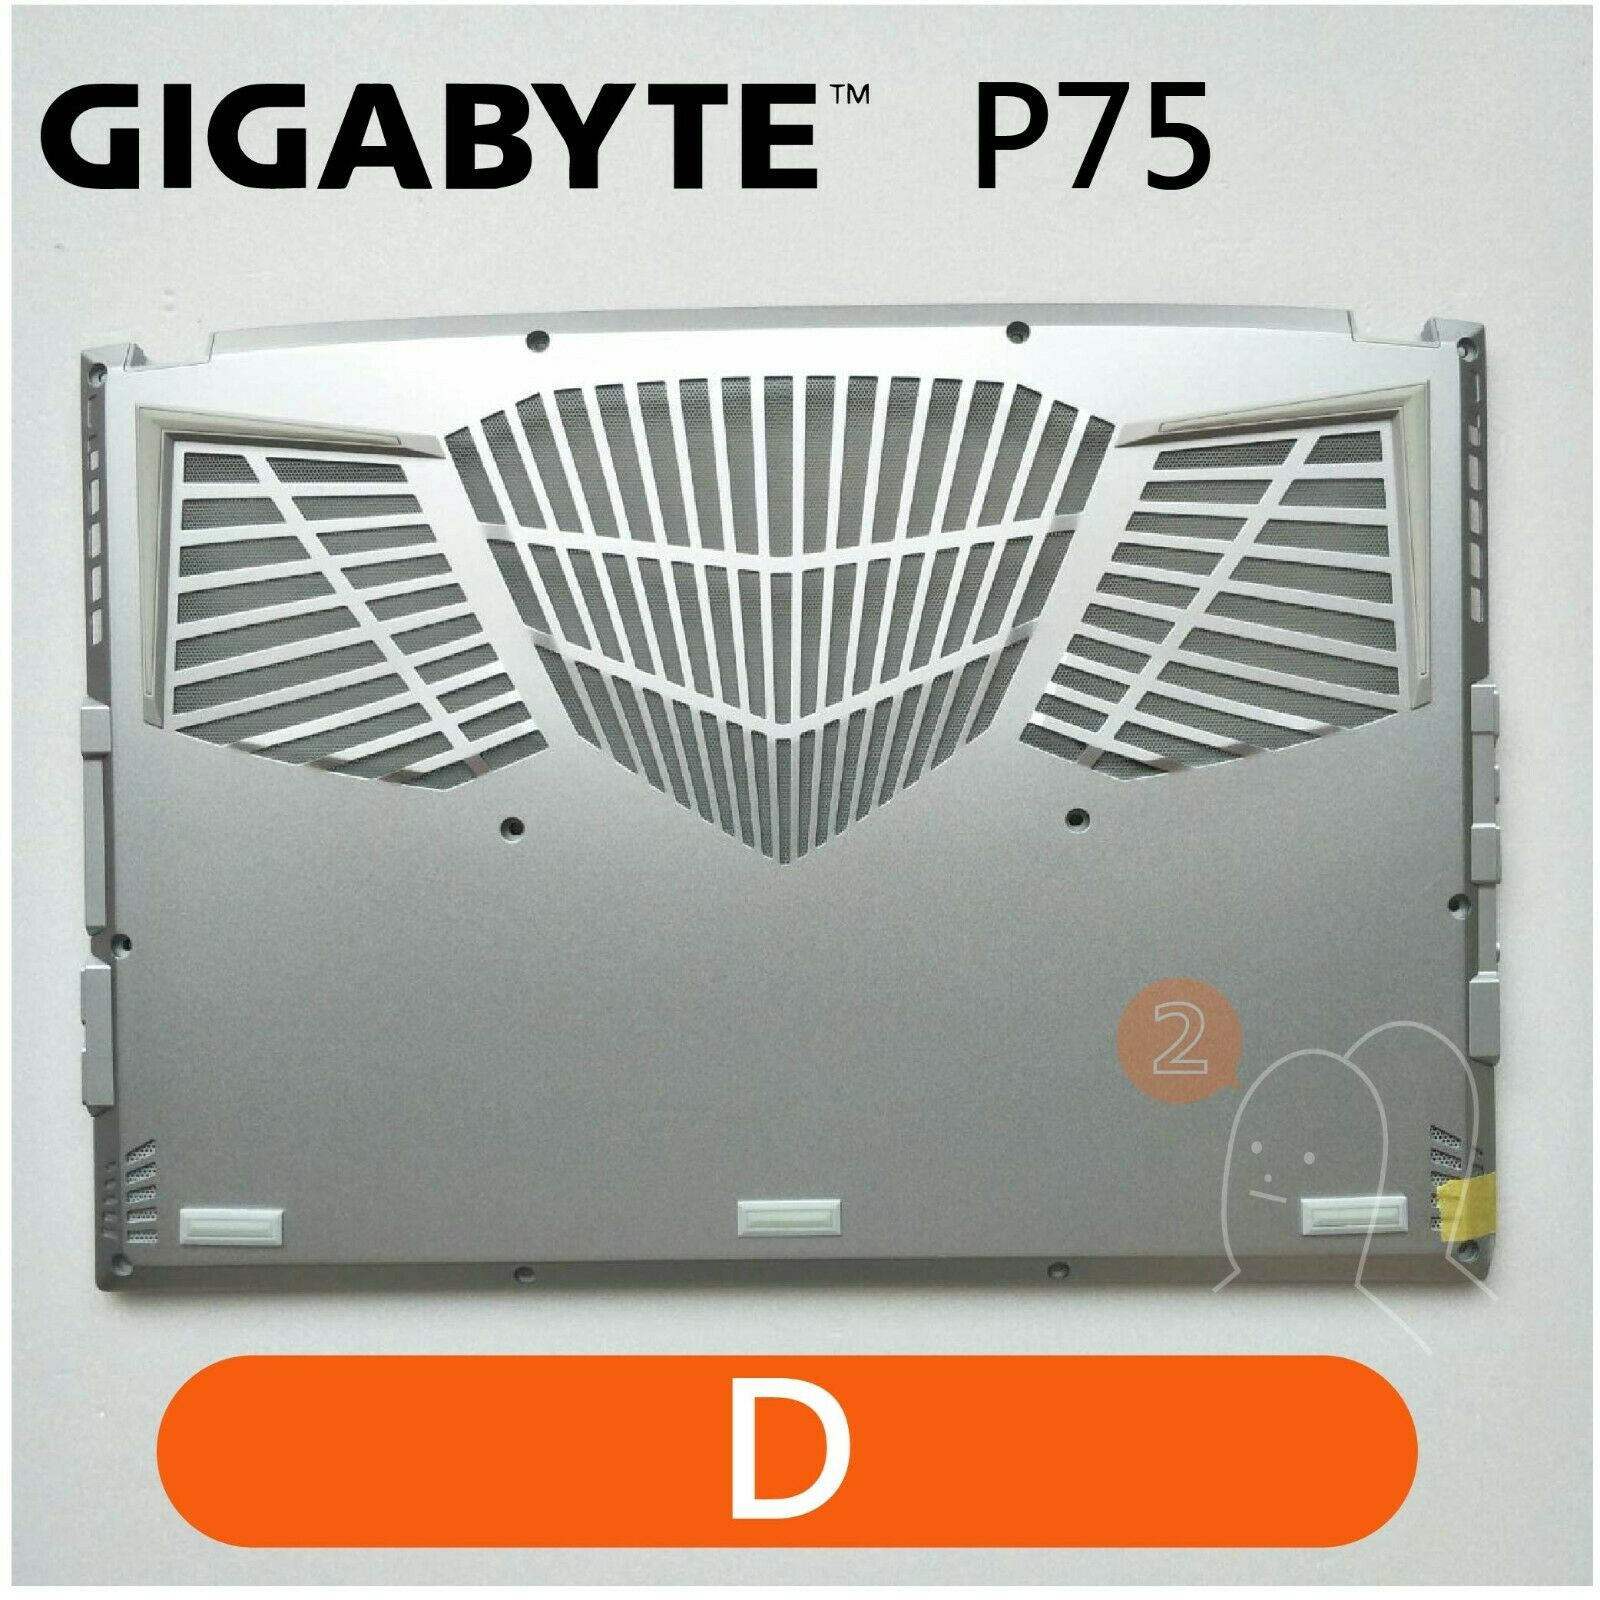 【2p3c】Replacement for GIGABYTE P75 Laptop LCD Cover : D(Bottom Base) Sliver